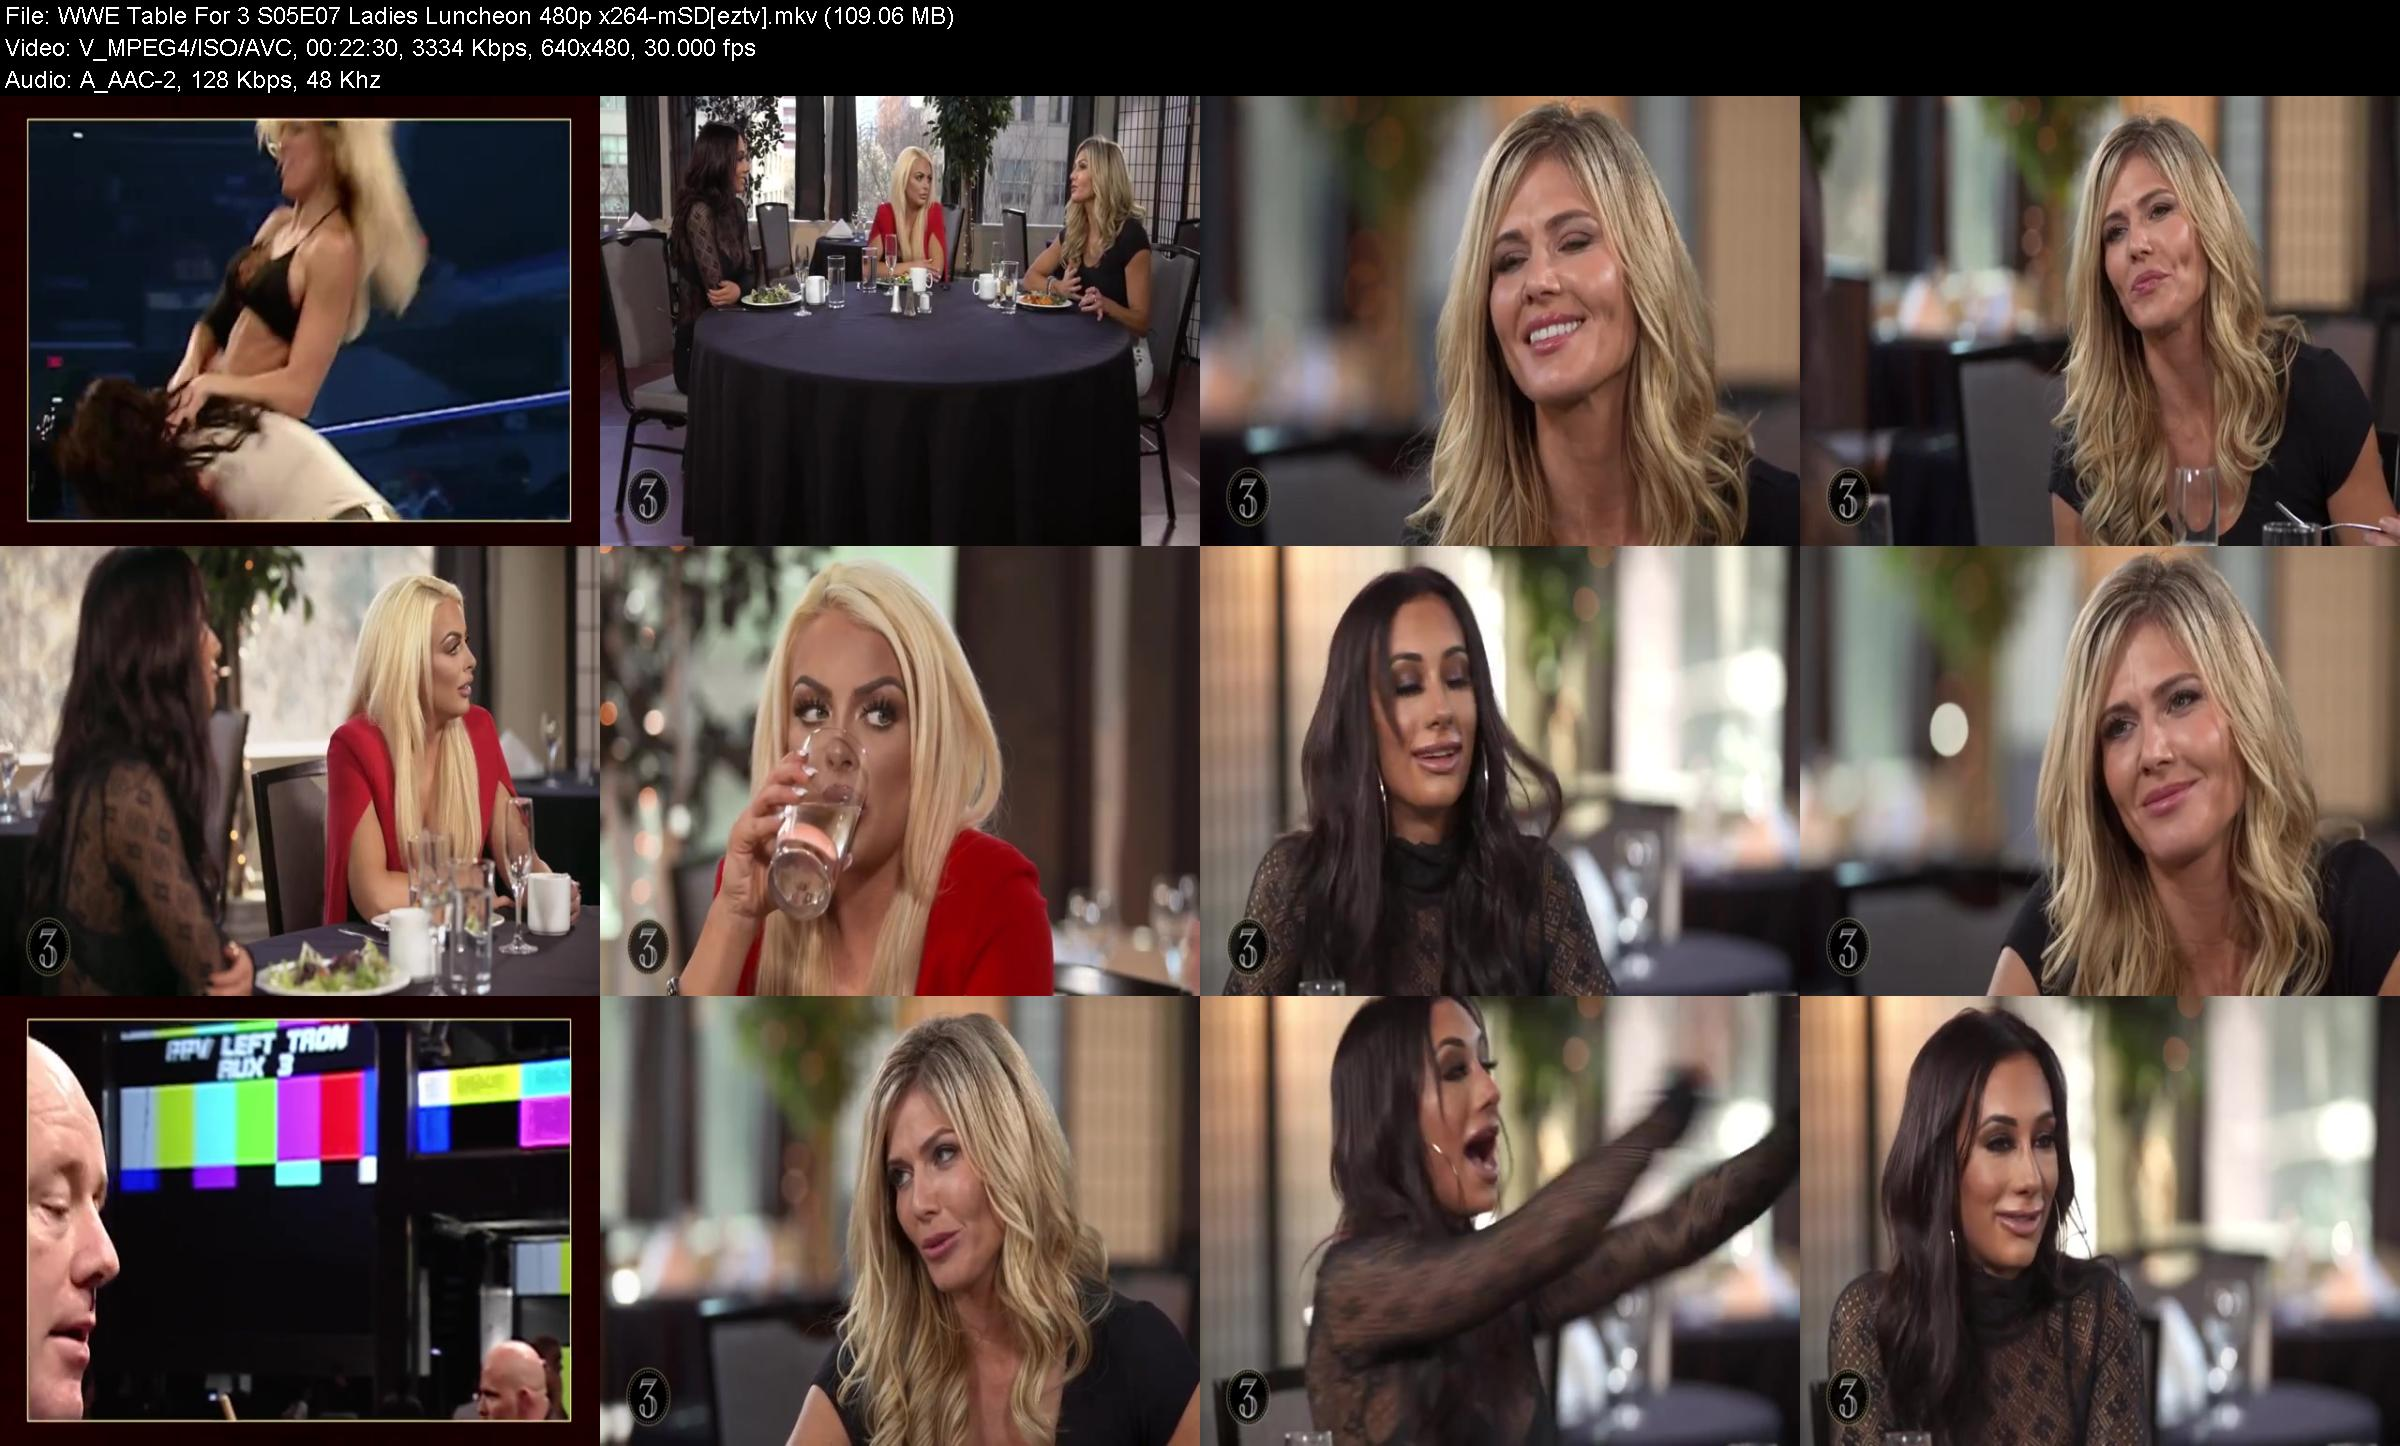 WWE Table For 3 S05E07 Ladies Luncheon 480p x264-mSD